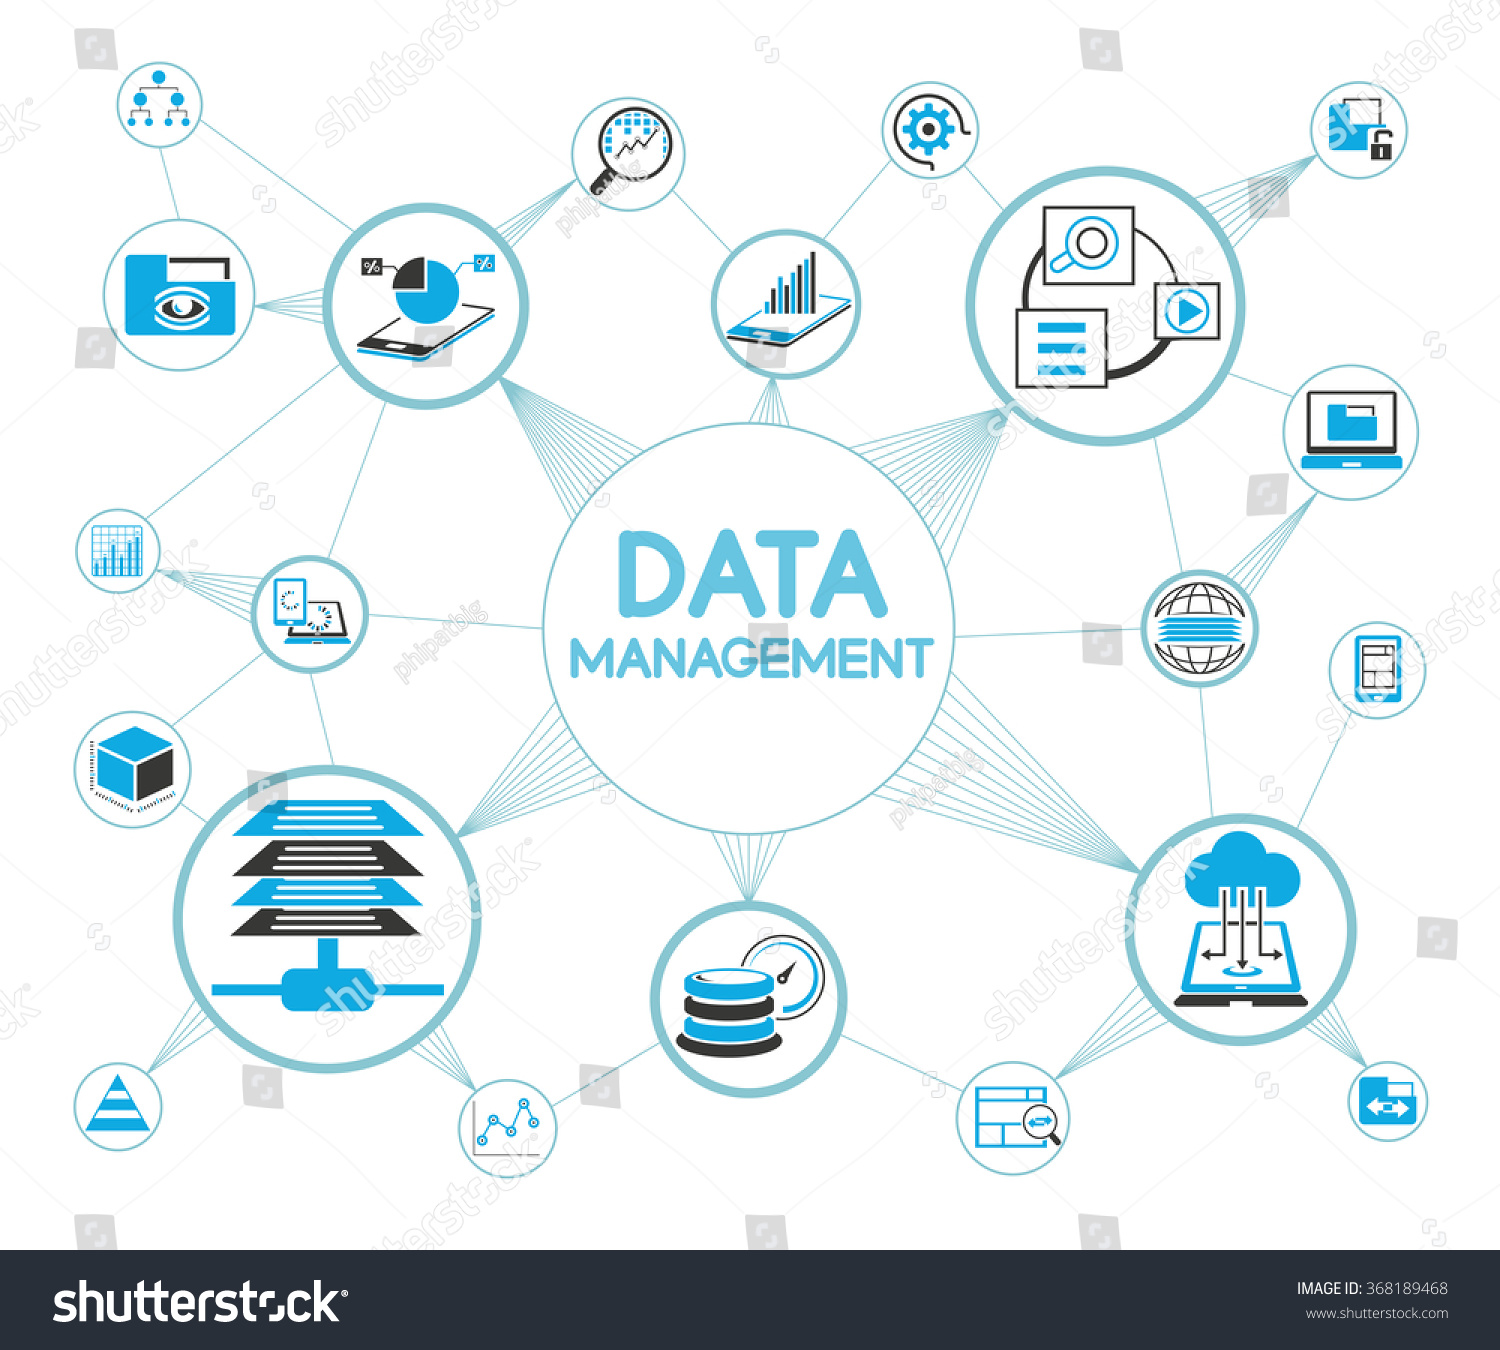 Data Management Concept Information Technology Concept Stock Vector ...